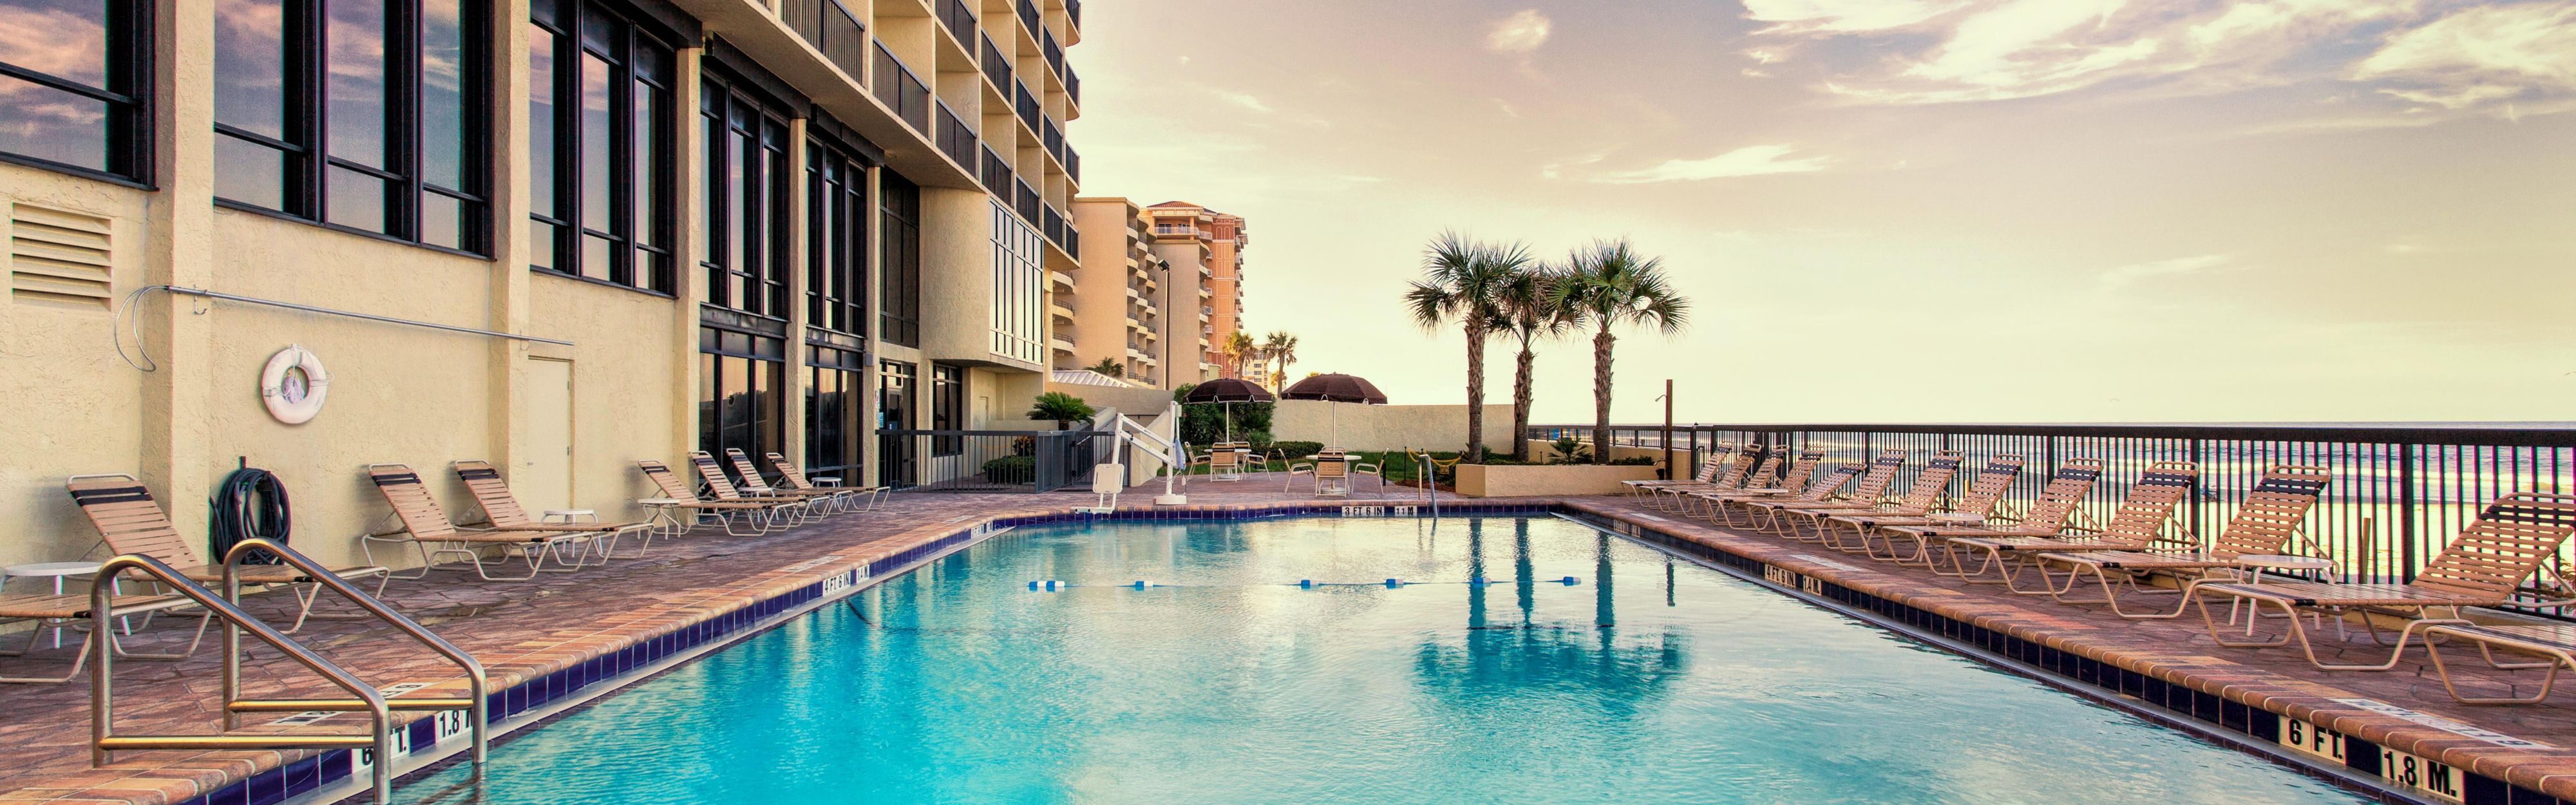 Holiday Inn Express & Suites Oceanfront Daytona Bch Shores image 2